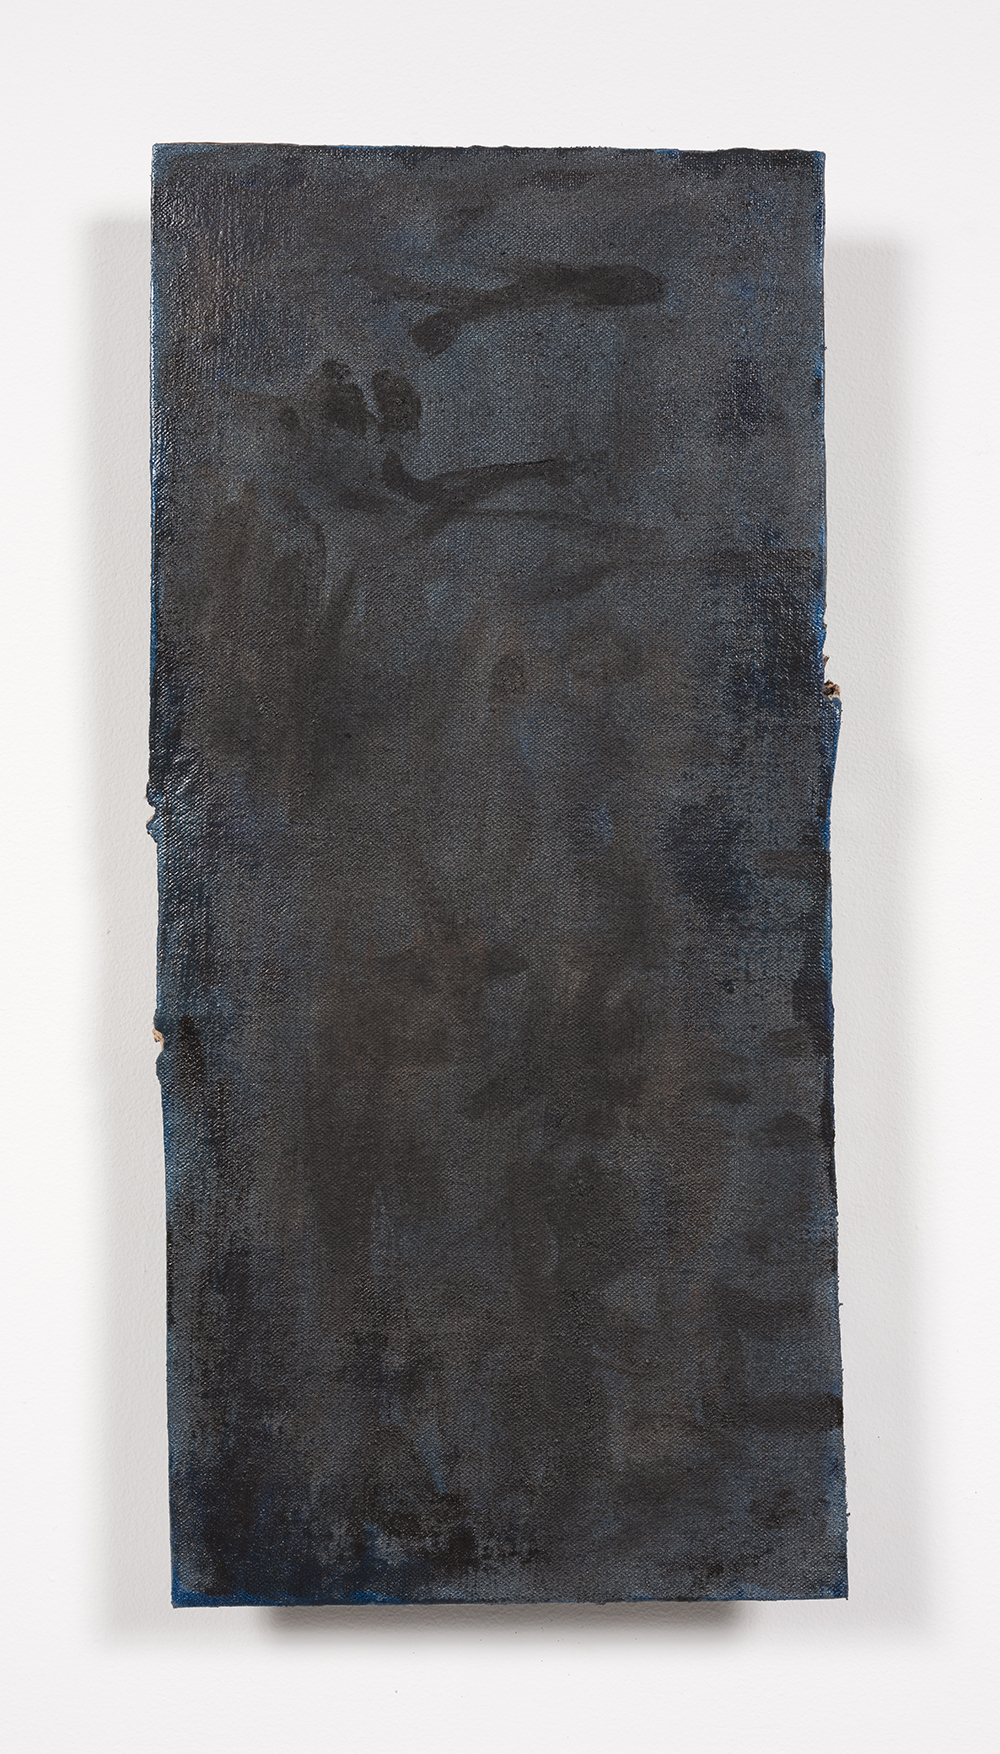 Graham Collins. <i>The Dropdown Menu of the Soul</i>, 2019. Oil and enamel on hemp laid on ceramic, 25 x 11 3/4 inches  (63.5 x 29.8 cm)